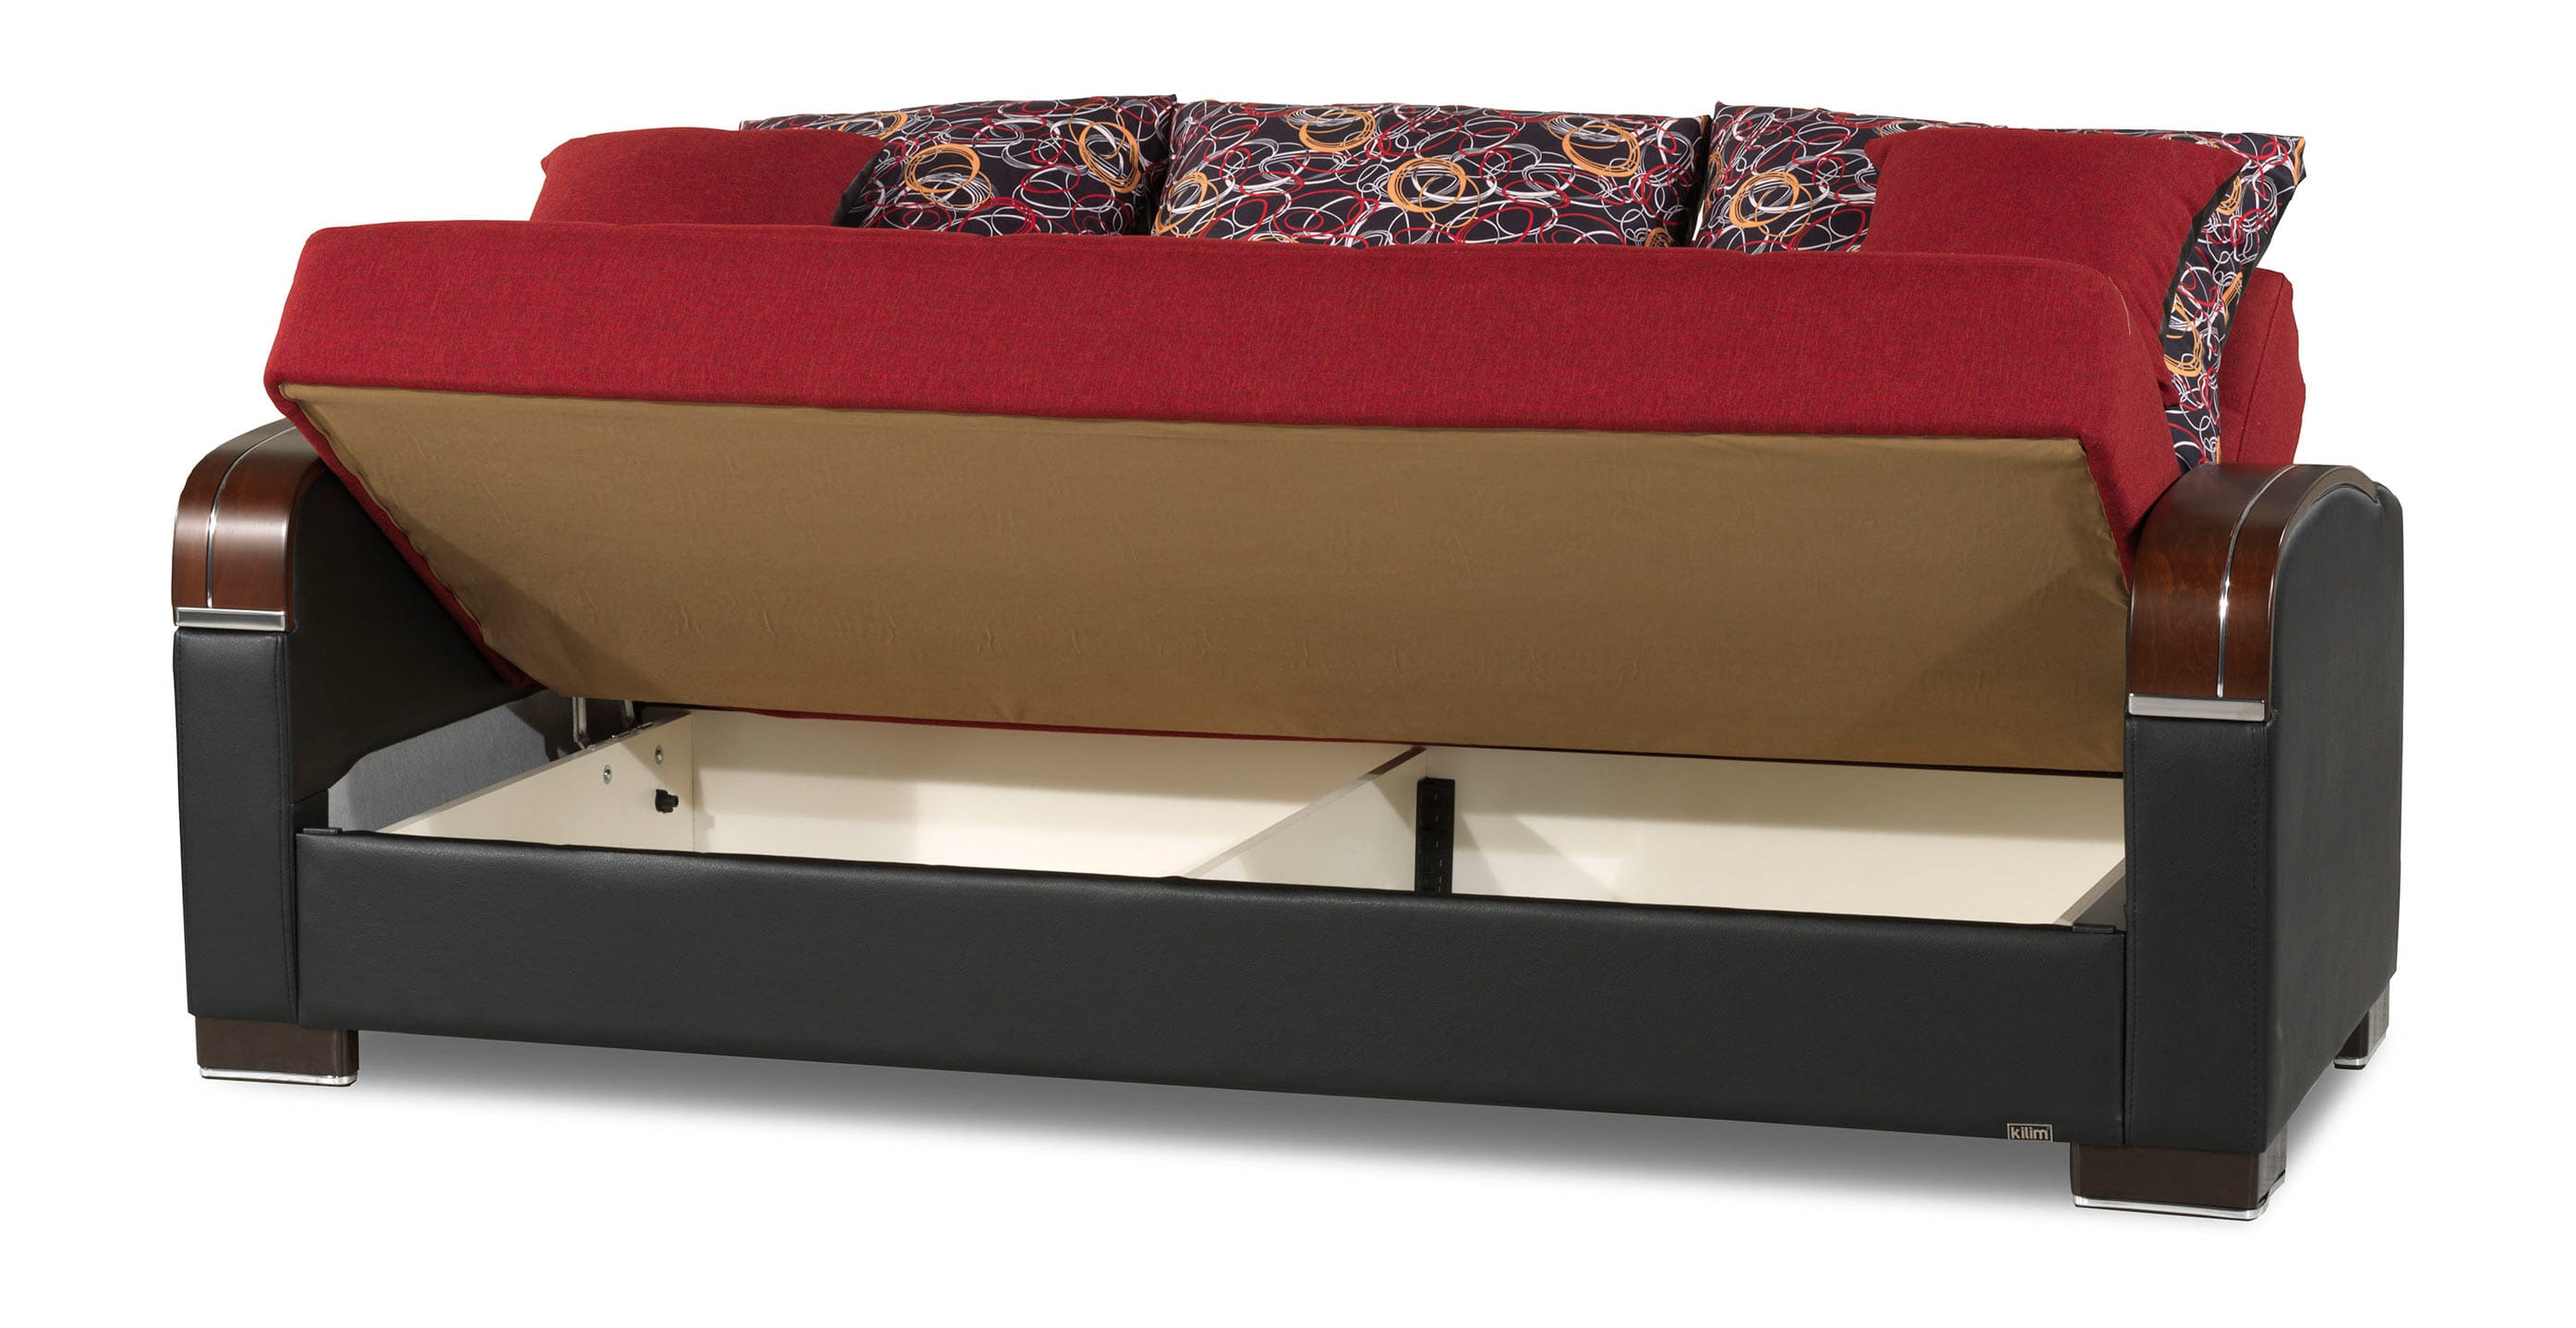 Mobimax Red Convertible Sofa Bed By Casamode